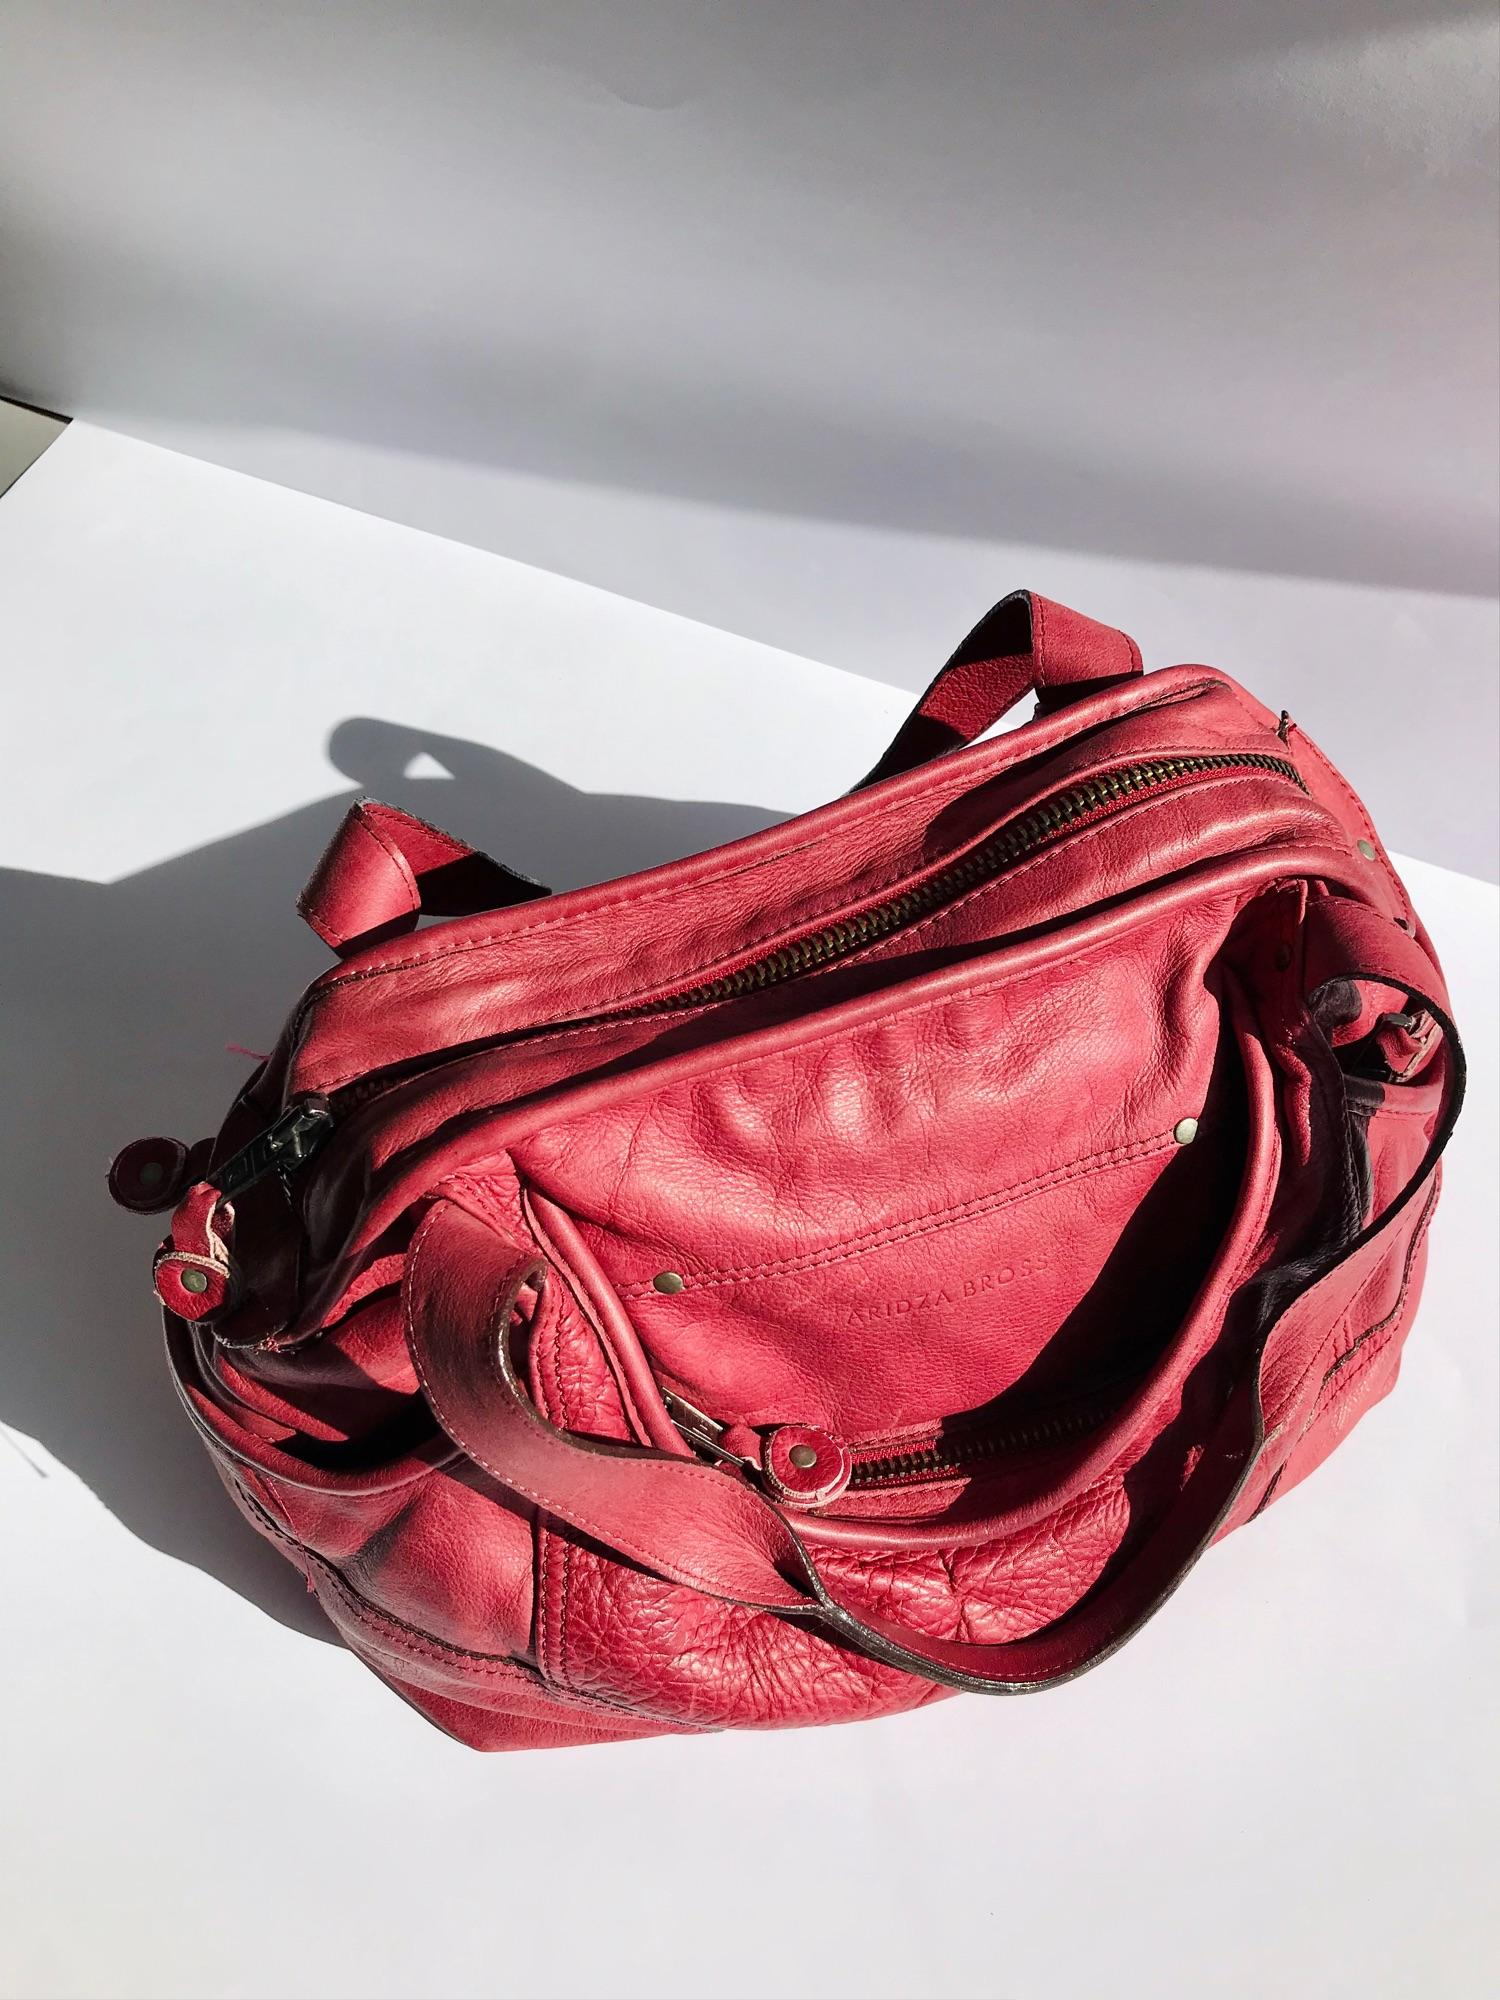 Aridza Bross Pink Opium Soft Leather Handbag